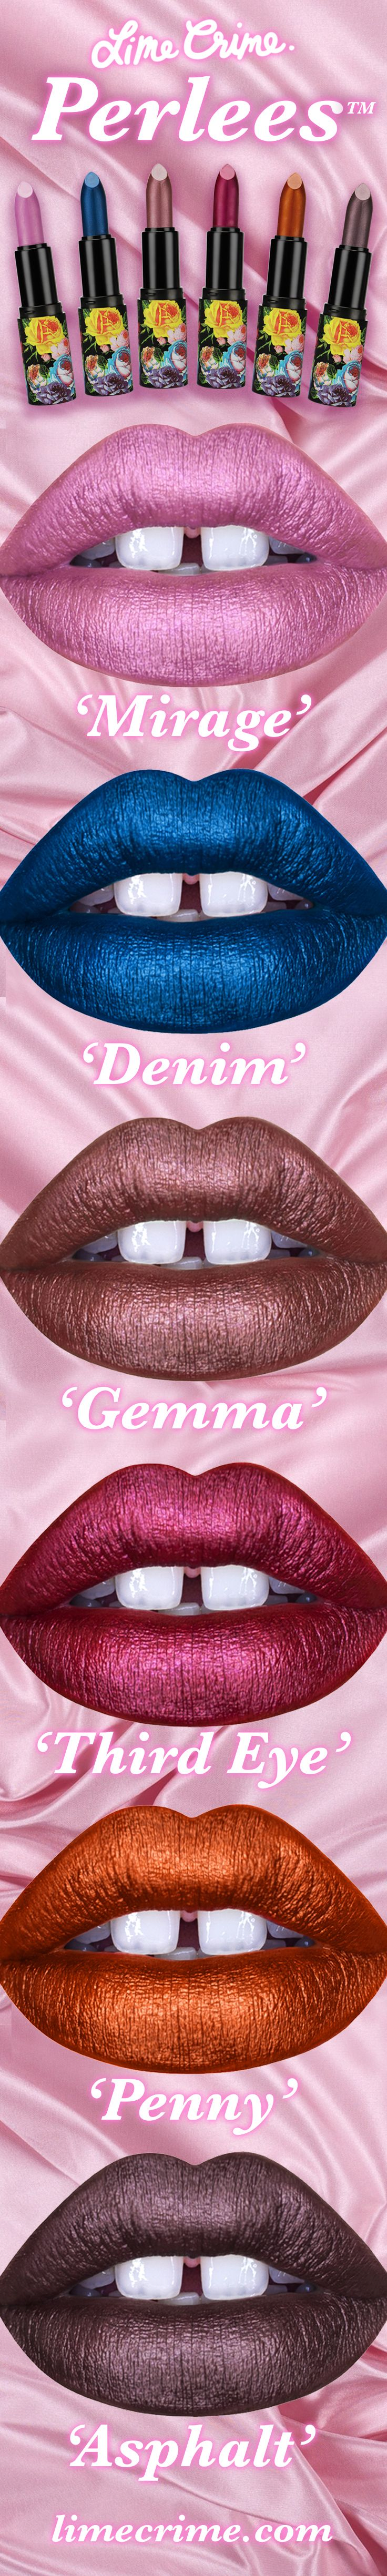 PERLEES have arrived! Click to shop the new shades from Lime Crime: MIRAGE I DENIM I GEMMA I THIRD EYE I PENNY I ASPHALT